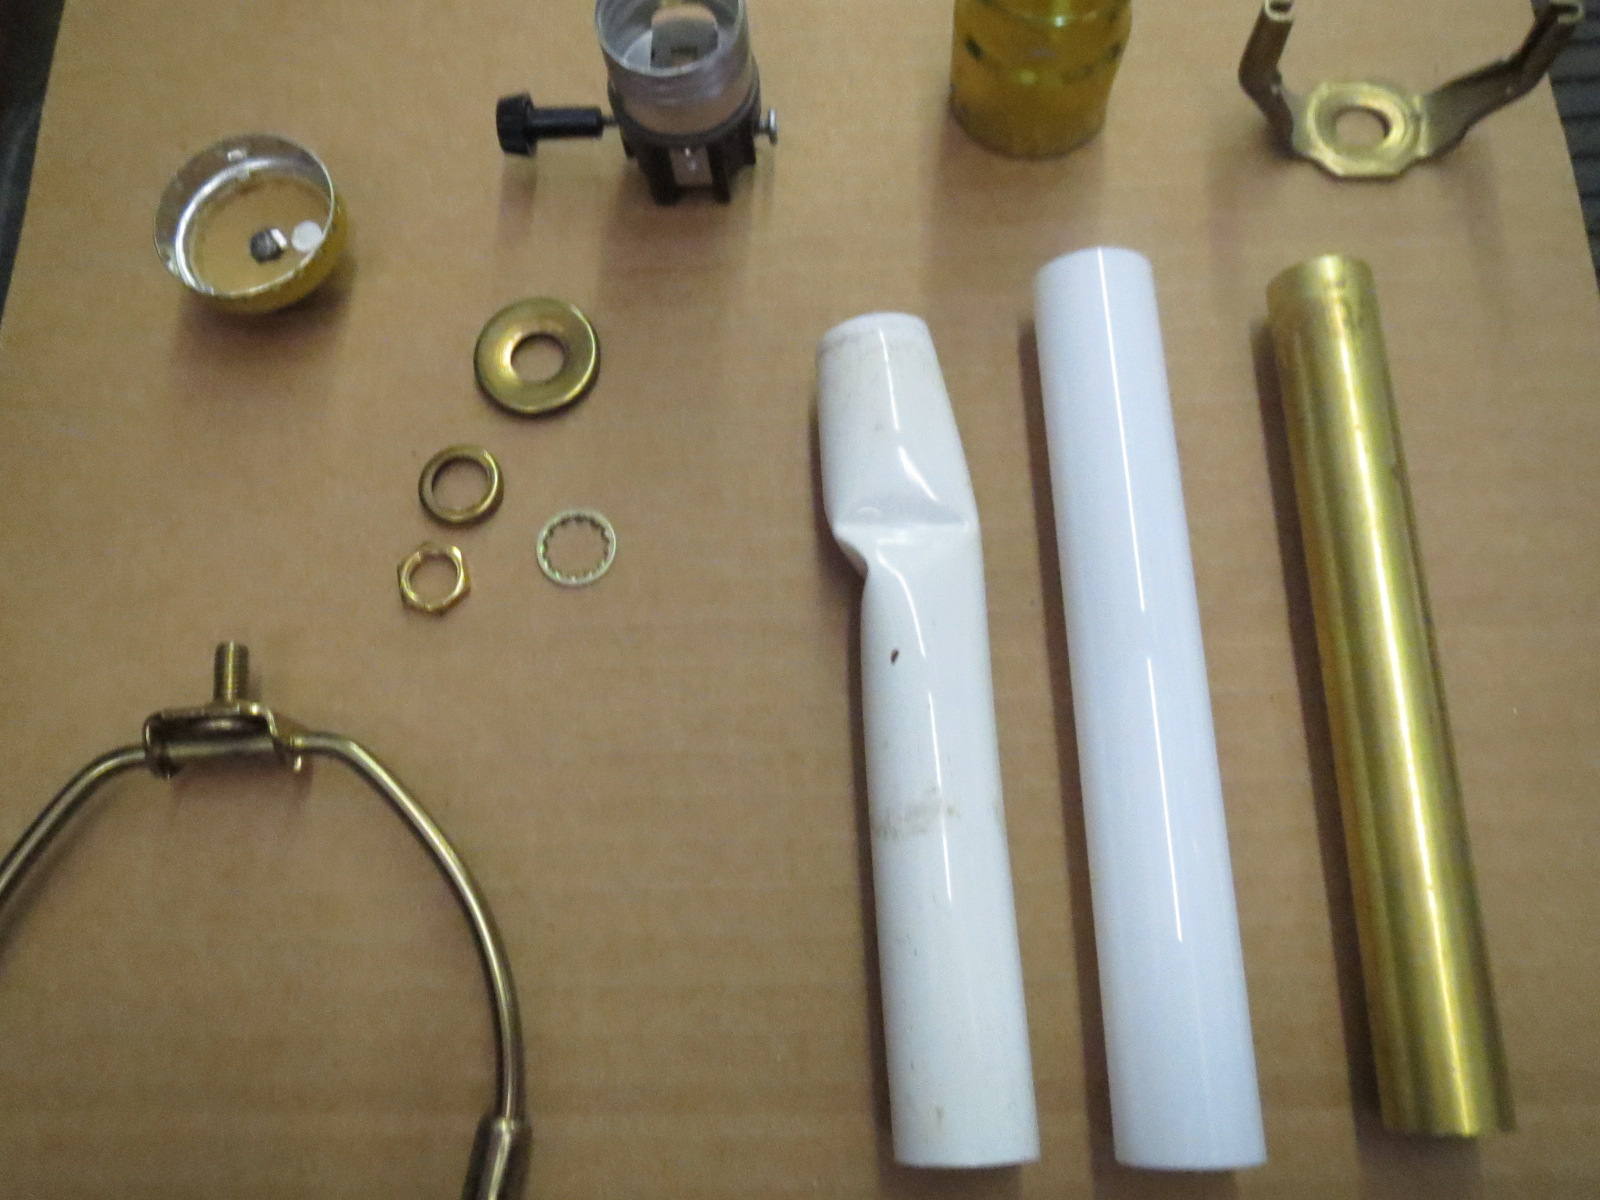 Lamp Parts and Repair | Lamp Doctor: Table Lamp With ...